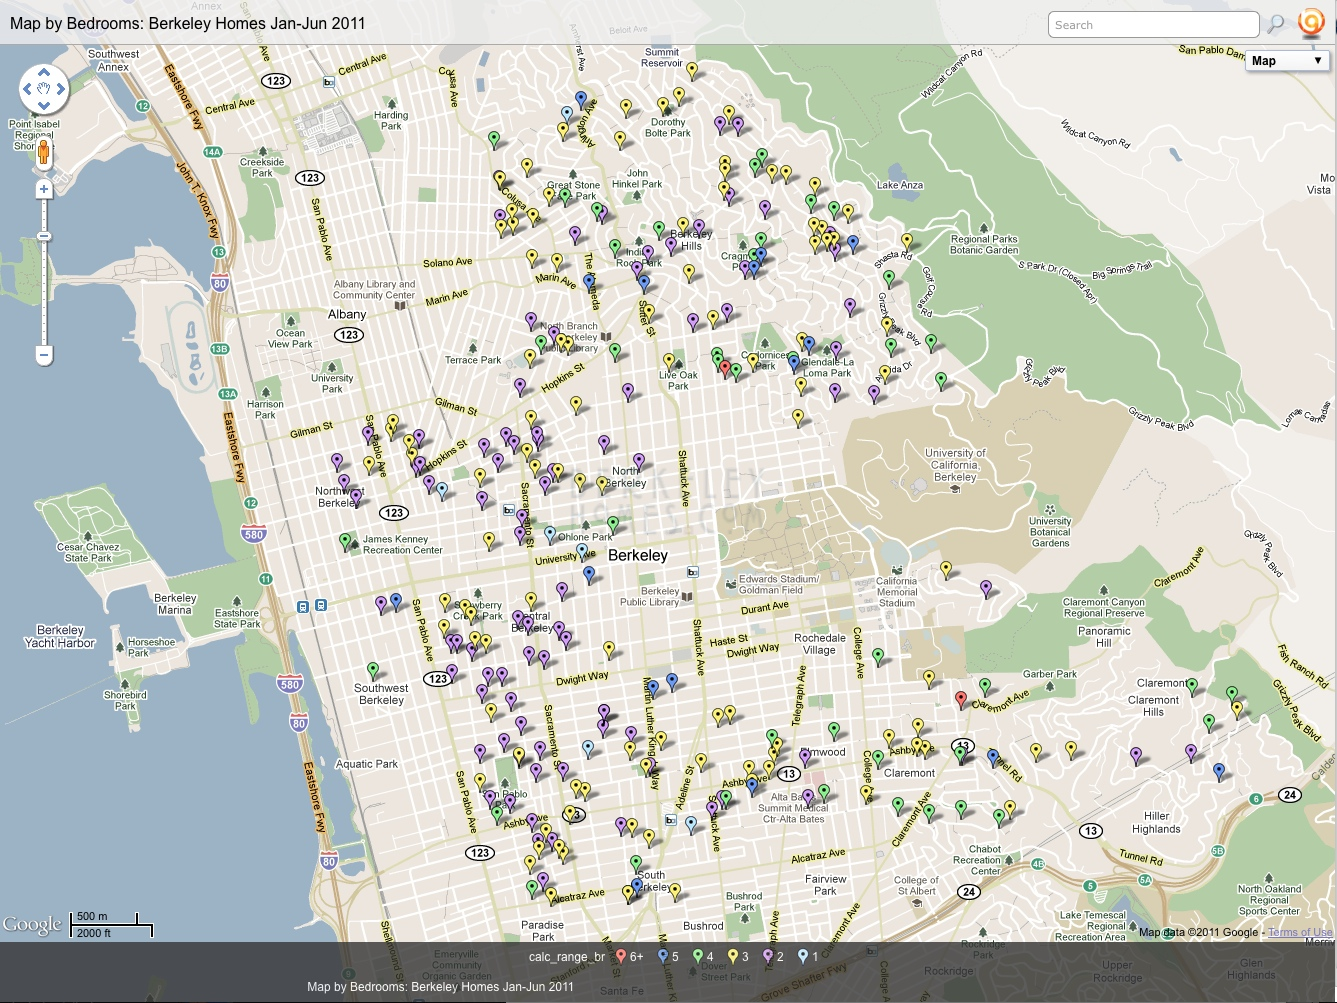 map-berkeley-mls-research-2011-01-06-single-family-home-bedrooms